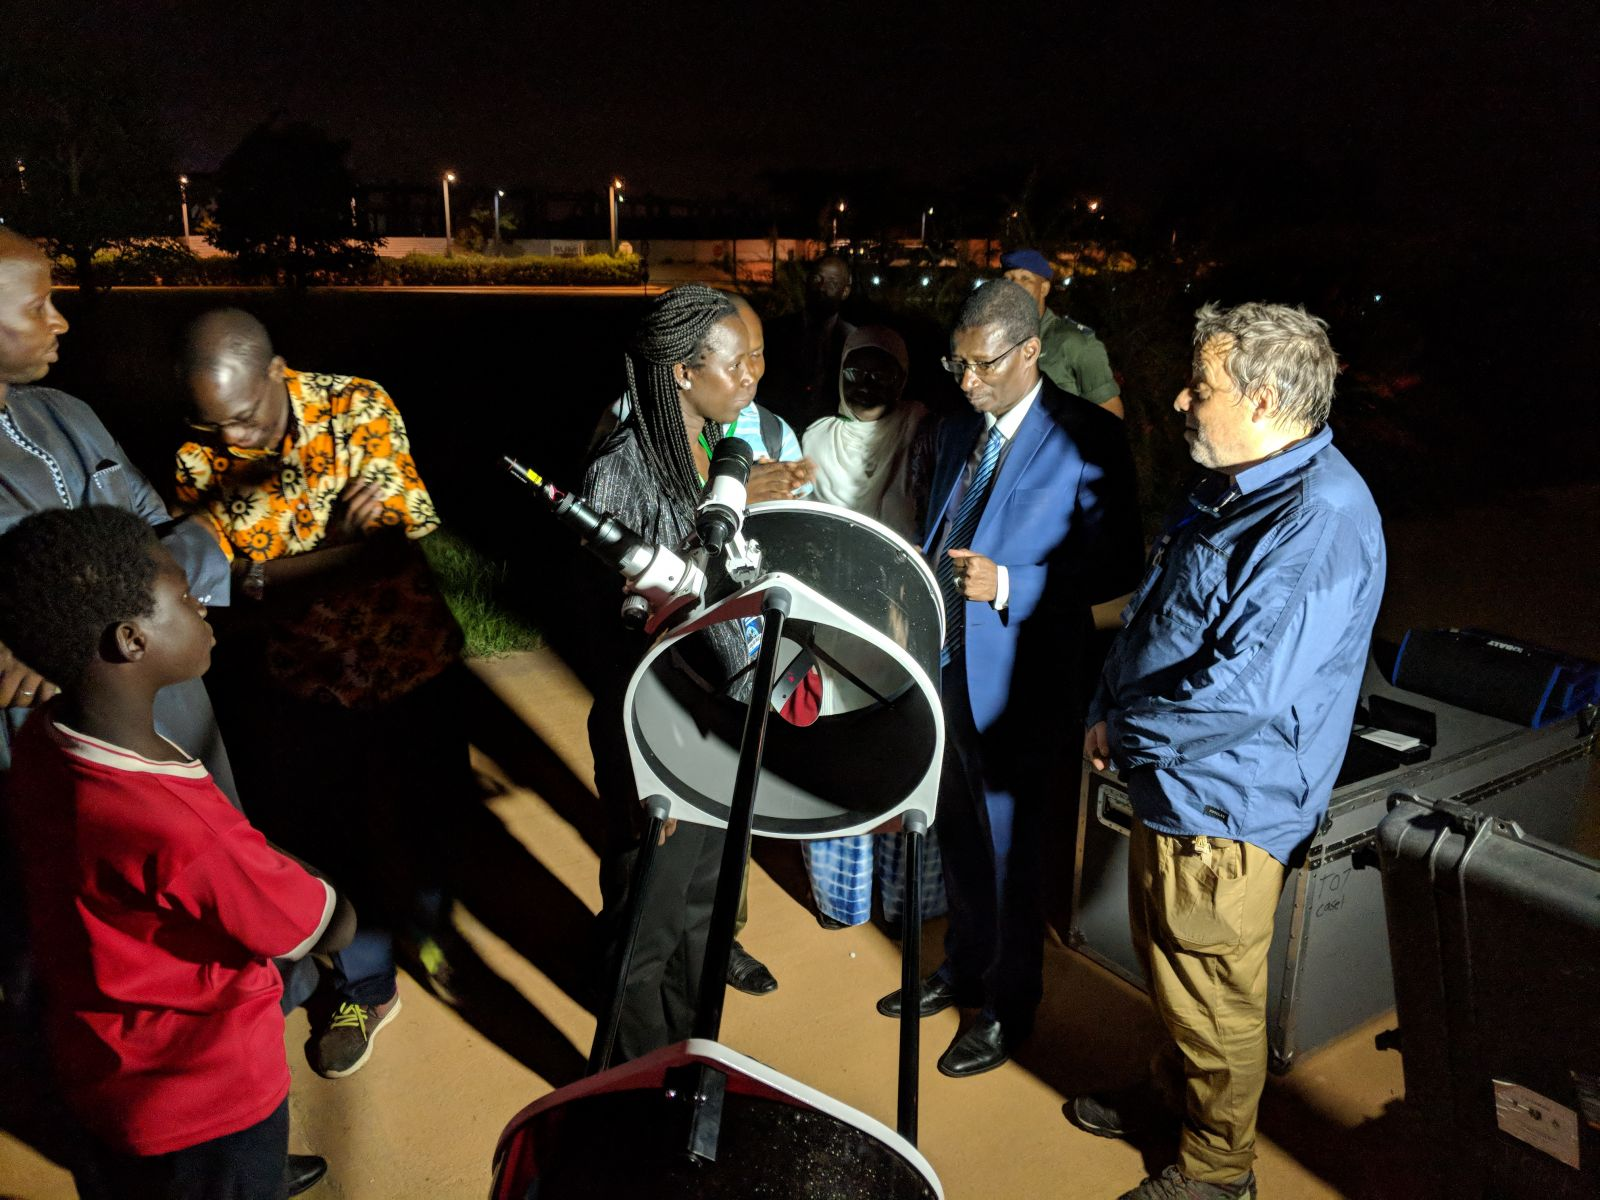 Occultation team members François Colas at right, of the Observatoire de Paris, France, and Salma Sylla Mbaye at center left, of Cheikh Anta Diop University, Dakar, Sénégal, show their telescope to Mary Teuw Niane, center right, the Sénégalese Minister of Higher Education, Research, and Innovation or MESRI, at one of the practice sessions held near Dakar before the stellar occultation by Ultima Thule, while other visitors (left) look on. Photo Credit: NASA/Johns Hopkins University Applied Physics Laboratory/Southwest Research Institute/Mike Grusin